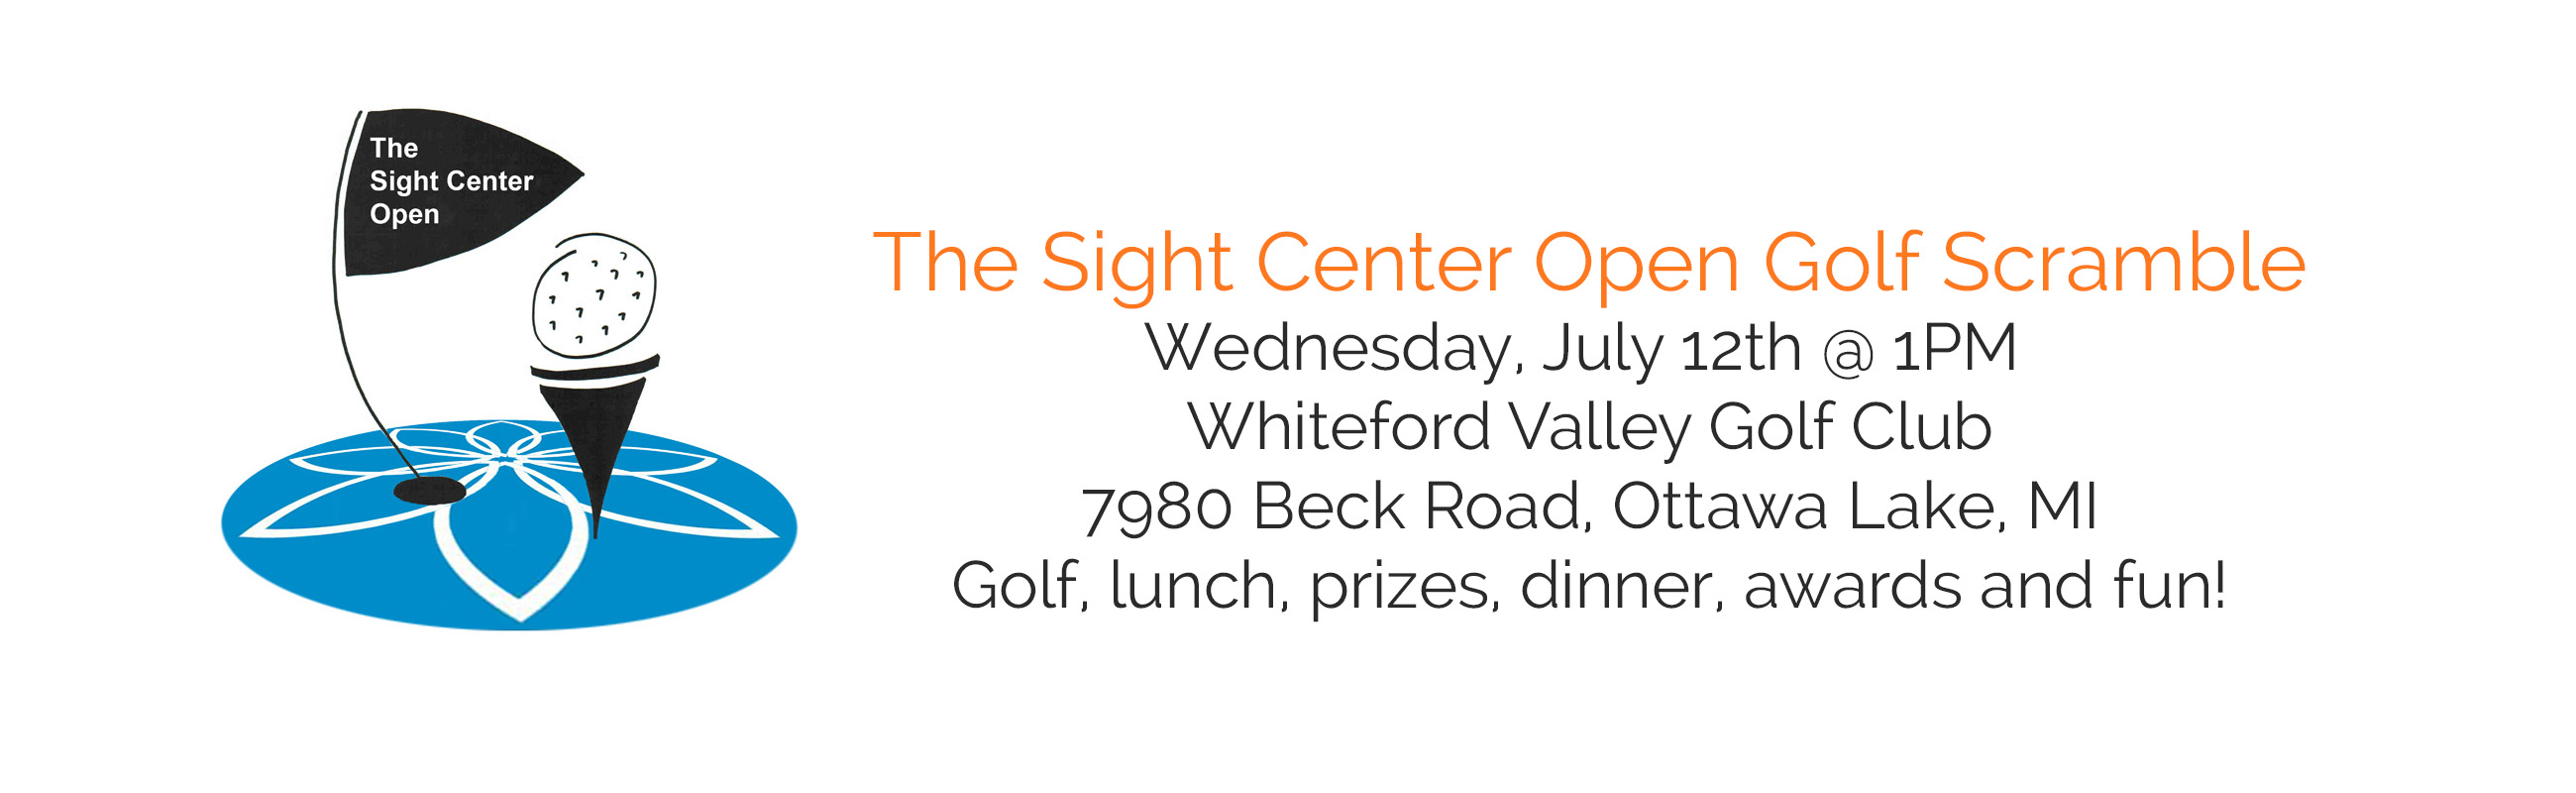 The Sight Center Golf Scramble